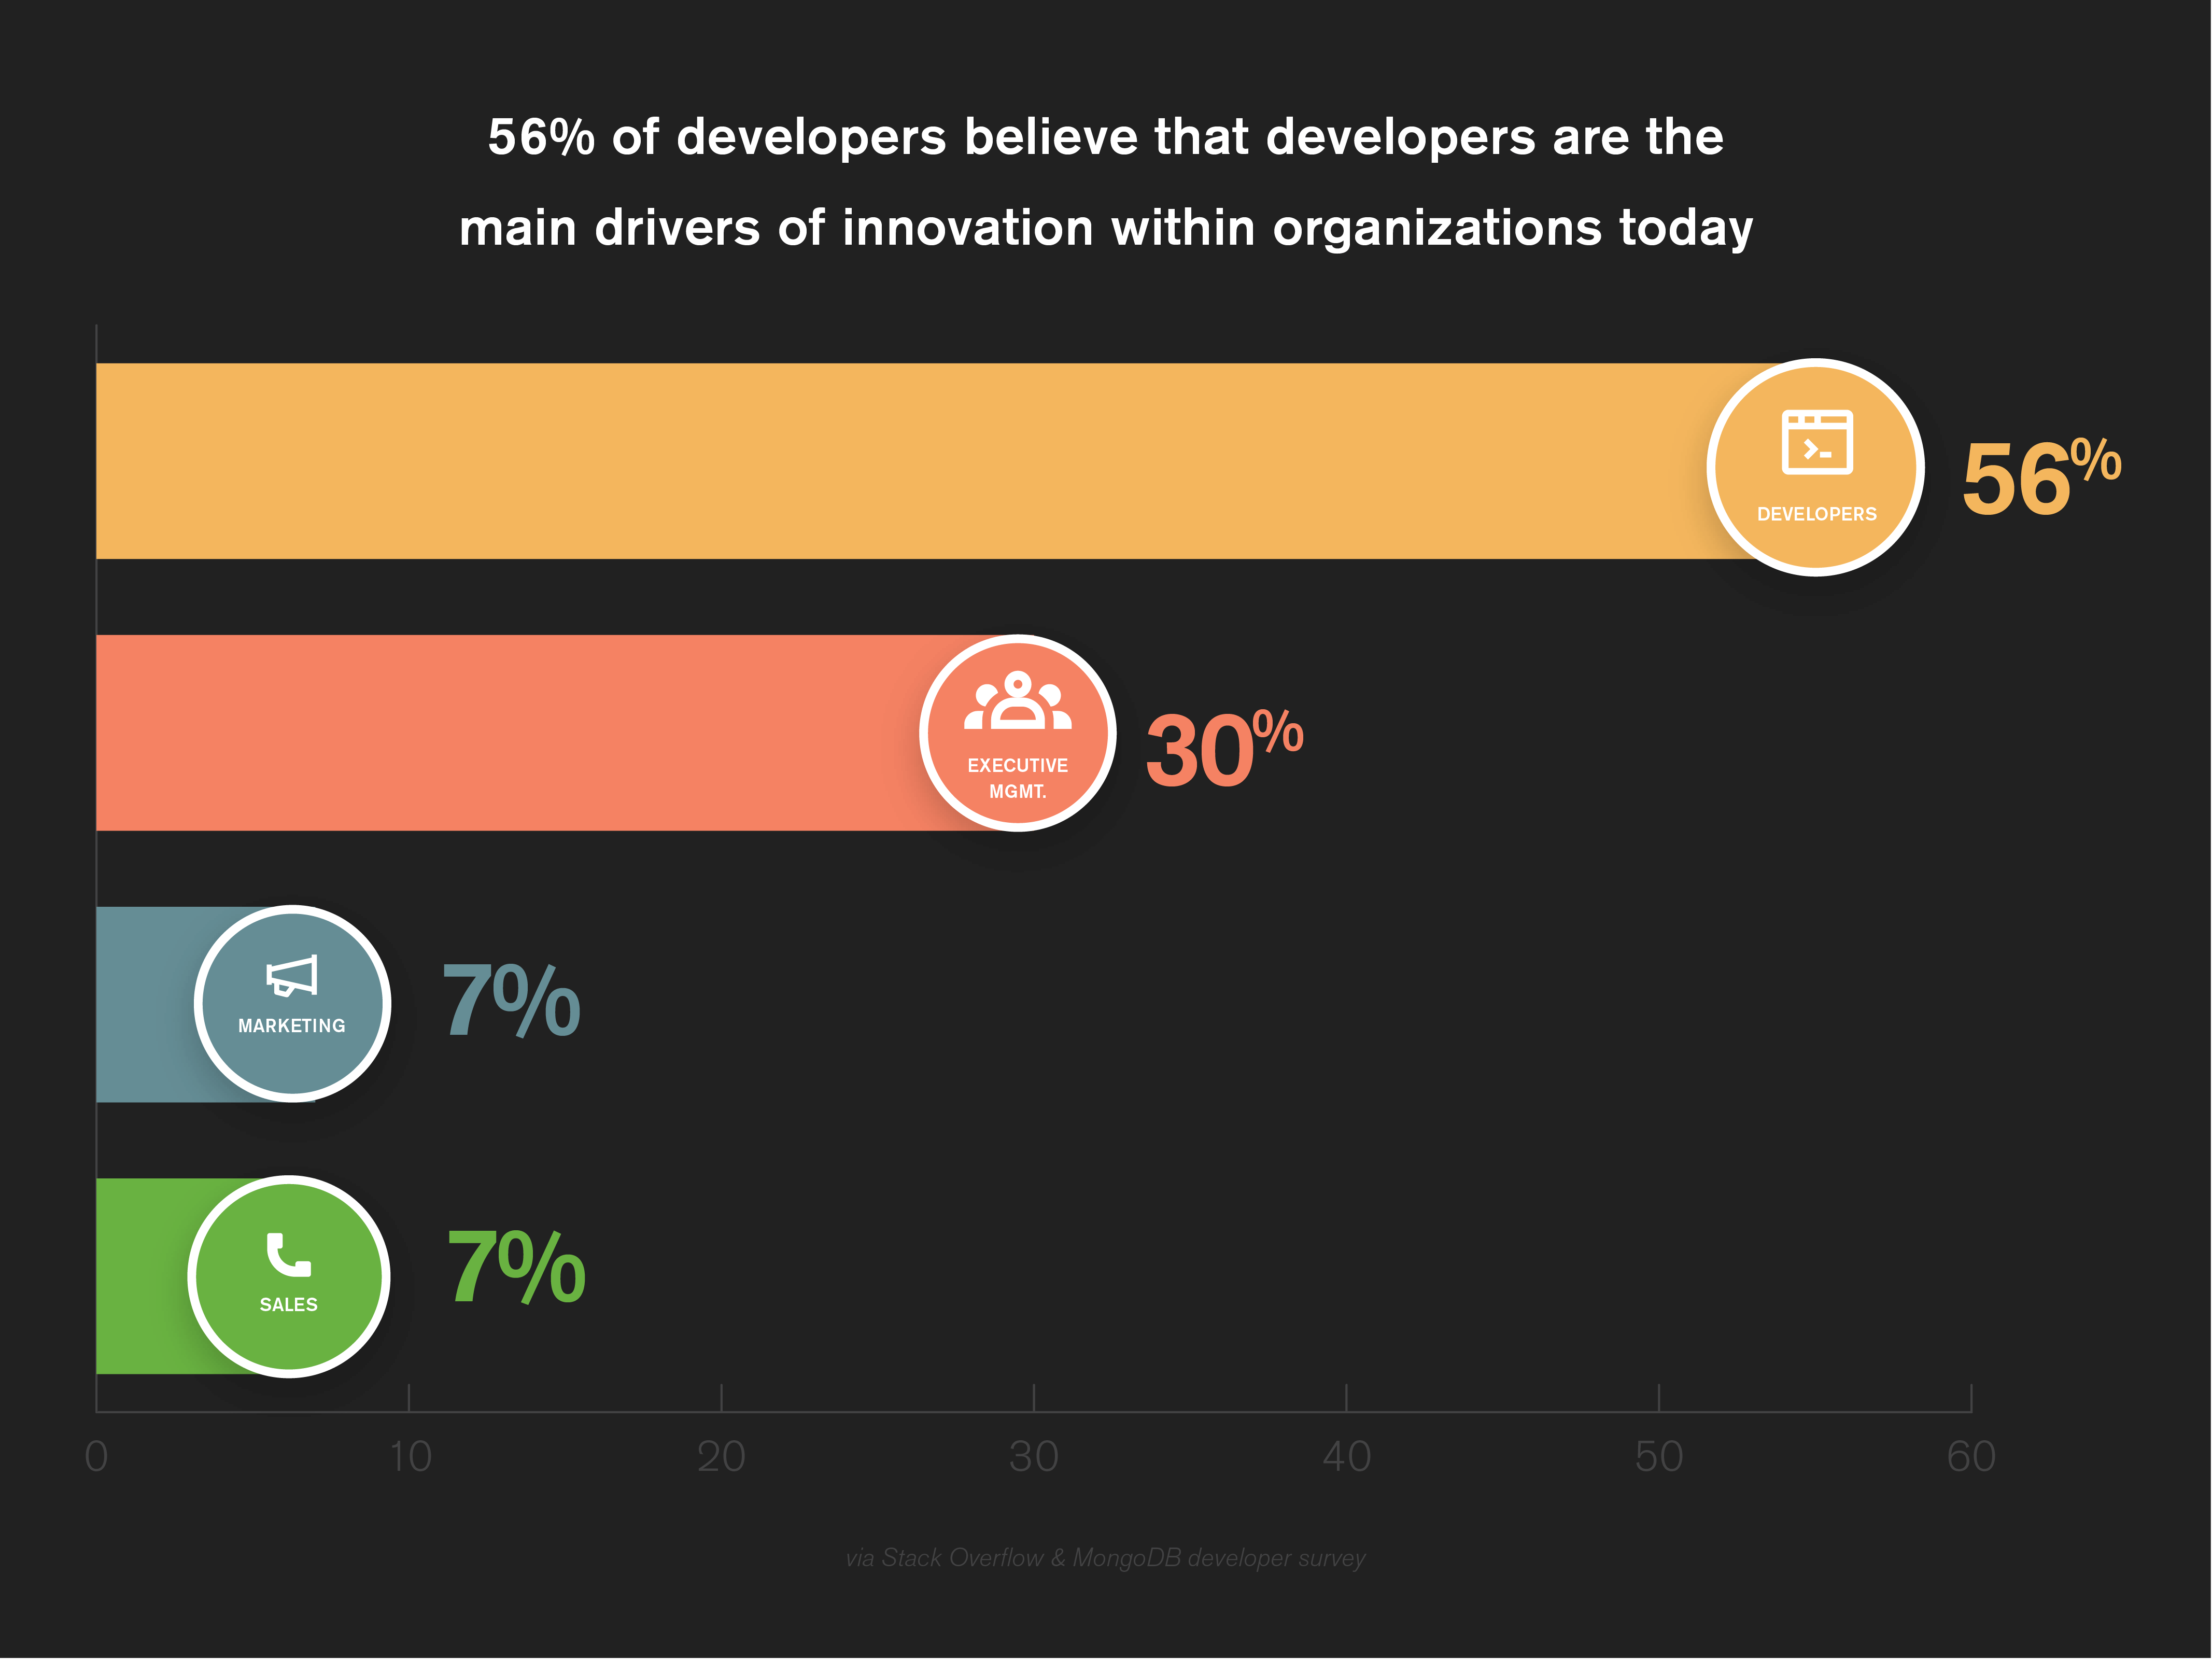 56% of developers believe that developers are the main drivers of innovation within organizations today